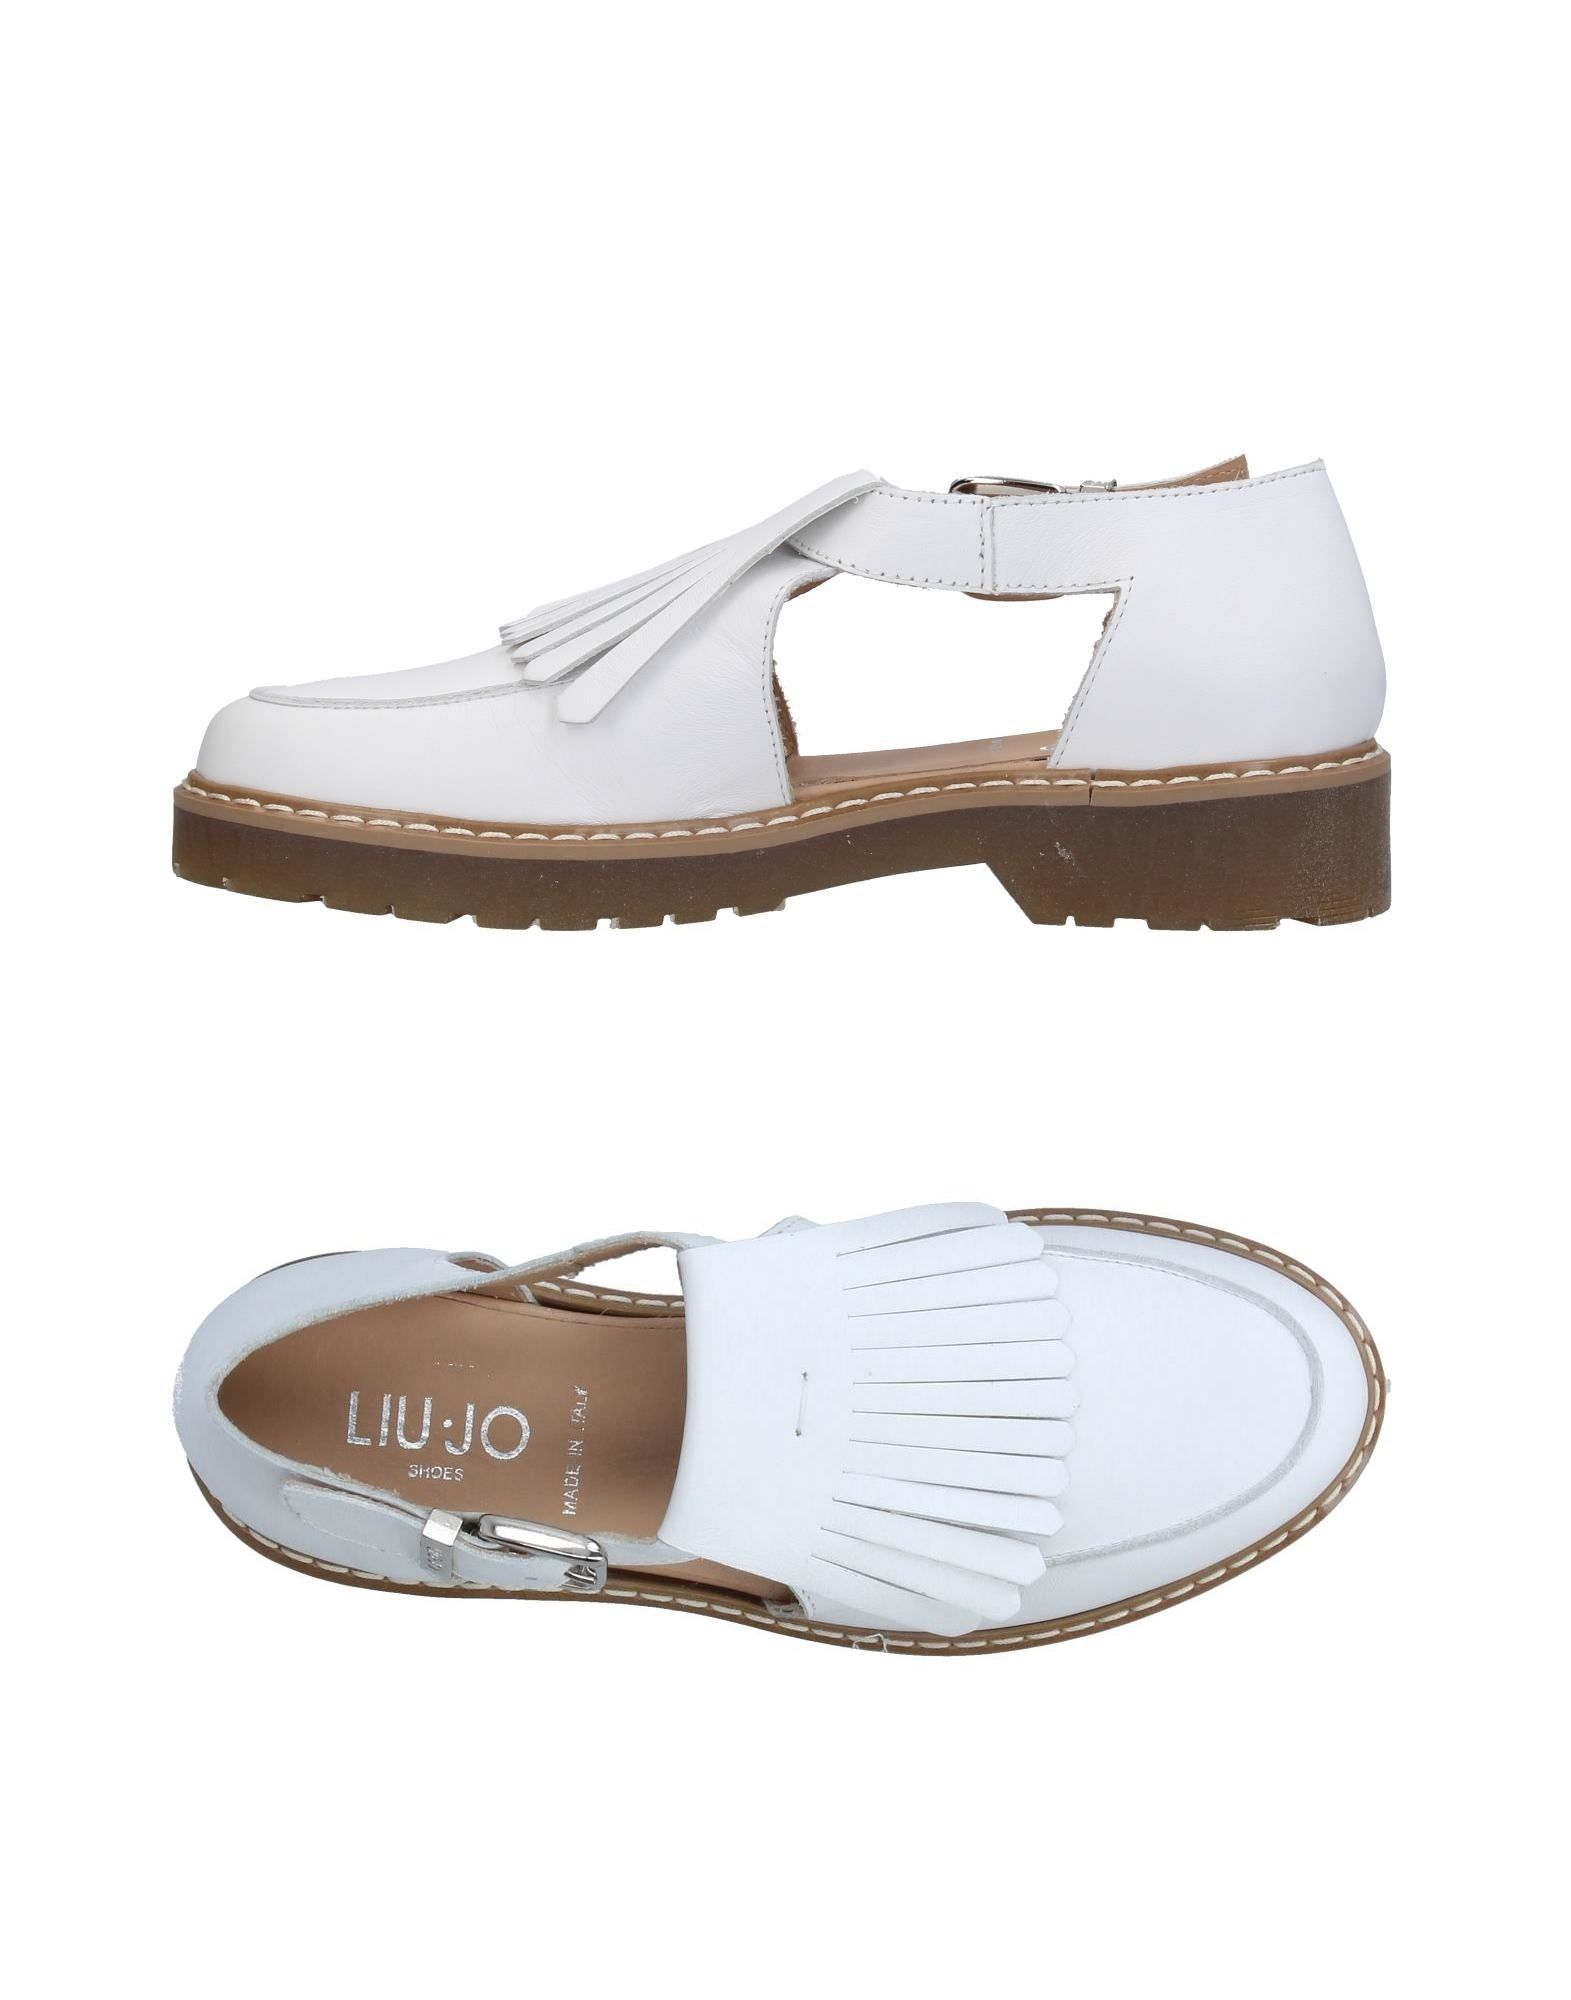 ФОТО liu •jo shoes Мокасины